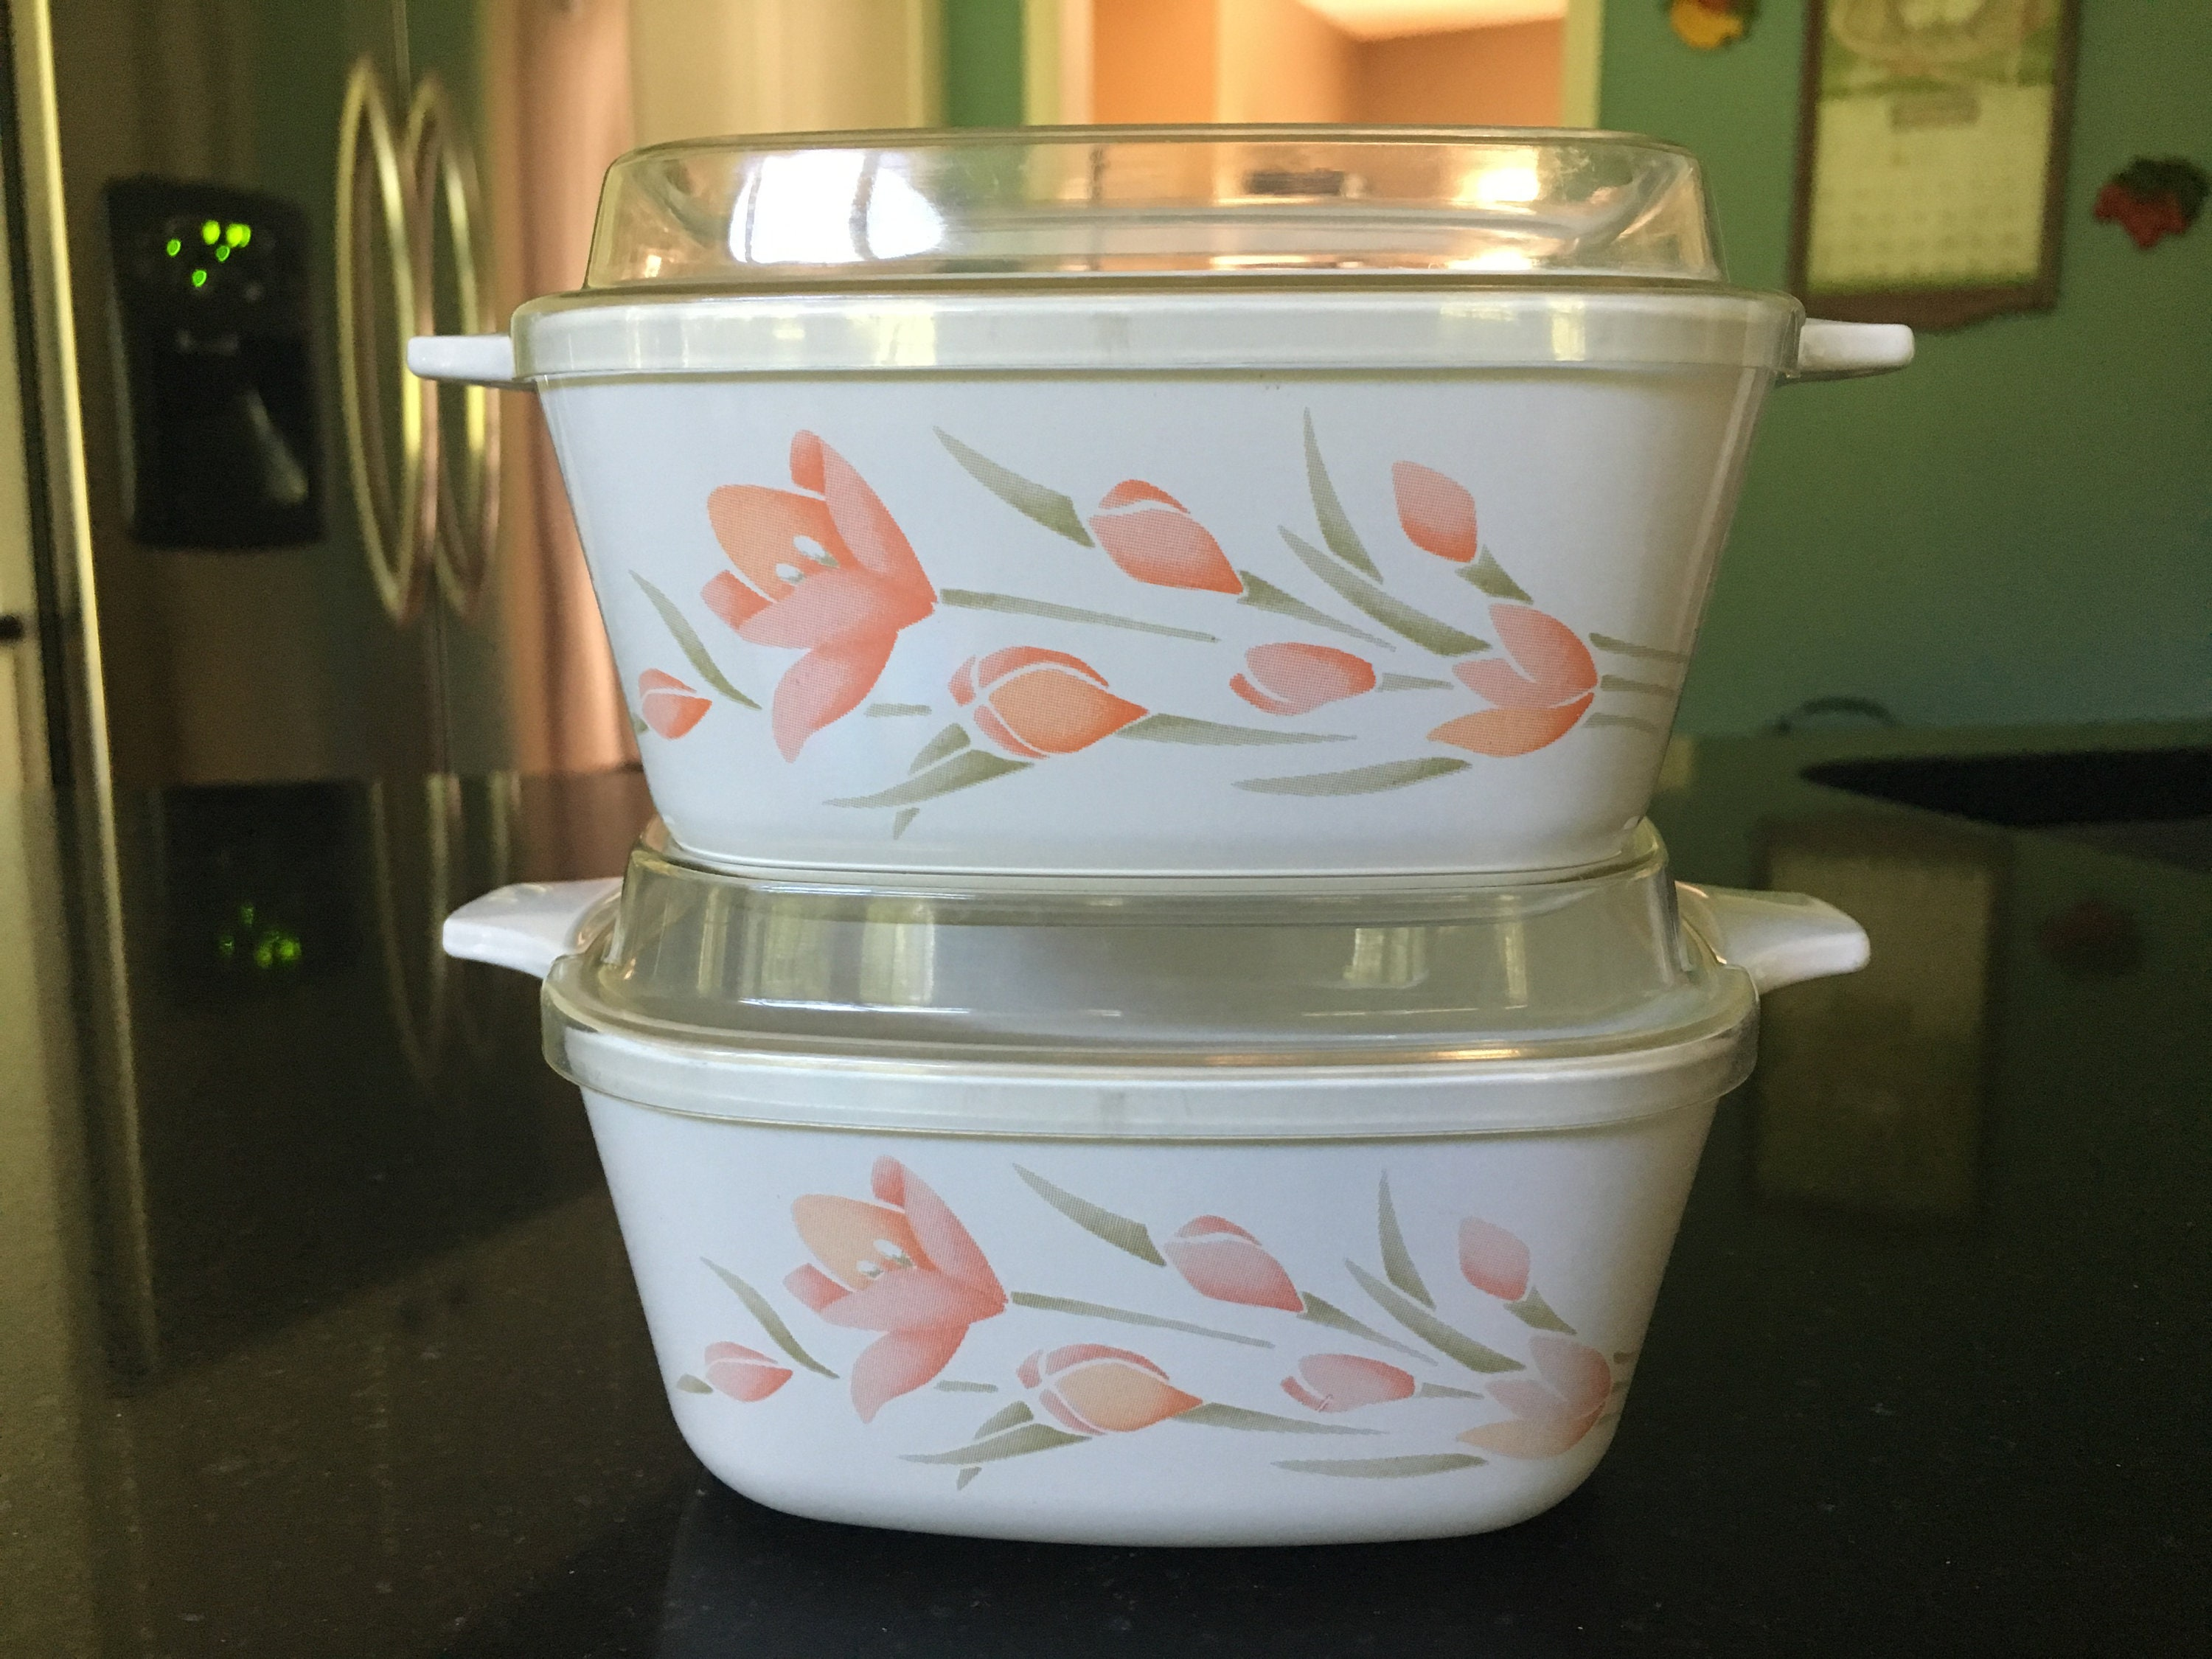 RETIRED Corning Ware French White Individual Casserole F-16-B RETIRED No Lid